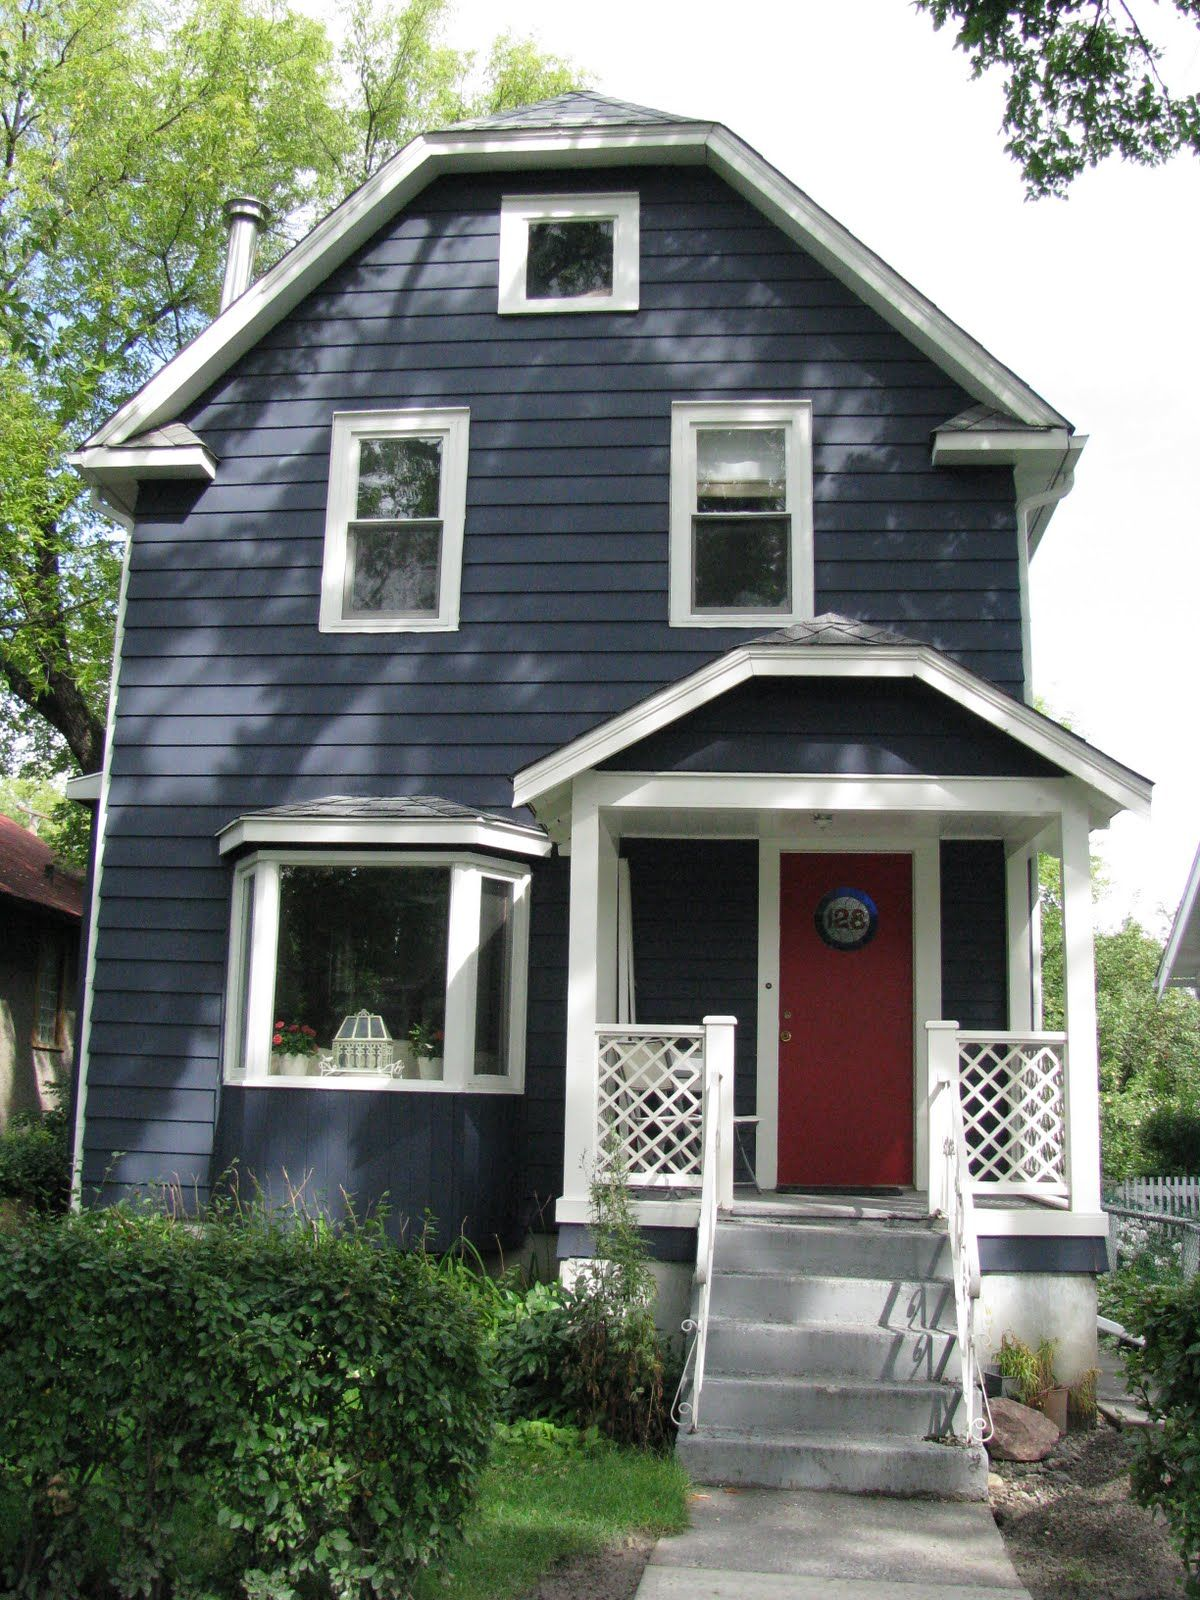 Dark Blue With White Trim Curb Appeal Pinterest White Trim House Colors And House